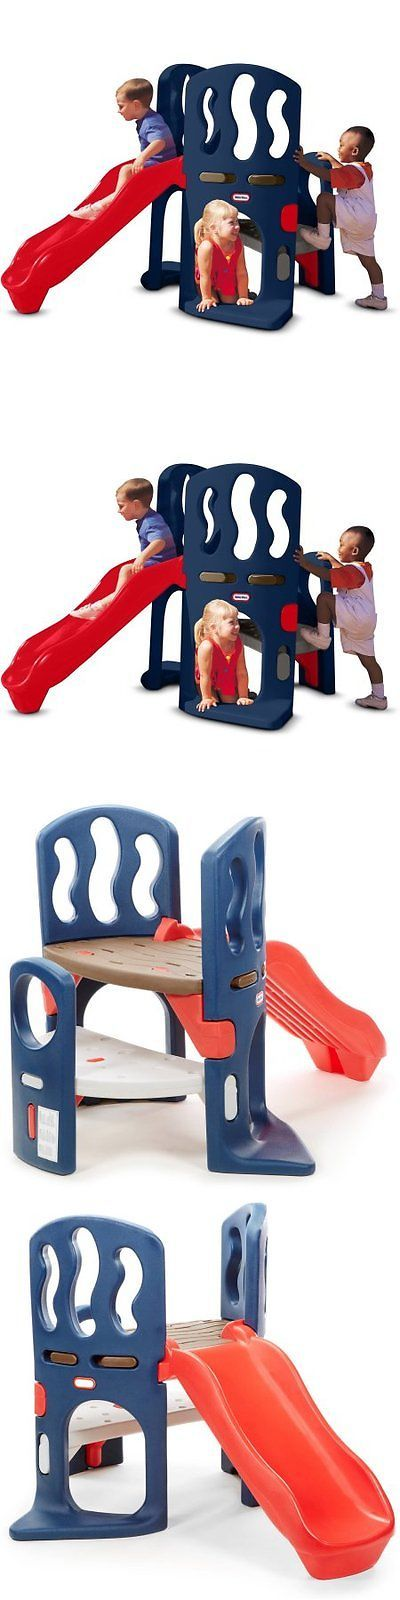 Swings Slides and Gyms 16515: Little Tikes Hide Slide Climber W -> BUY IT NOW ONLY: $167.12 on eBay!